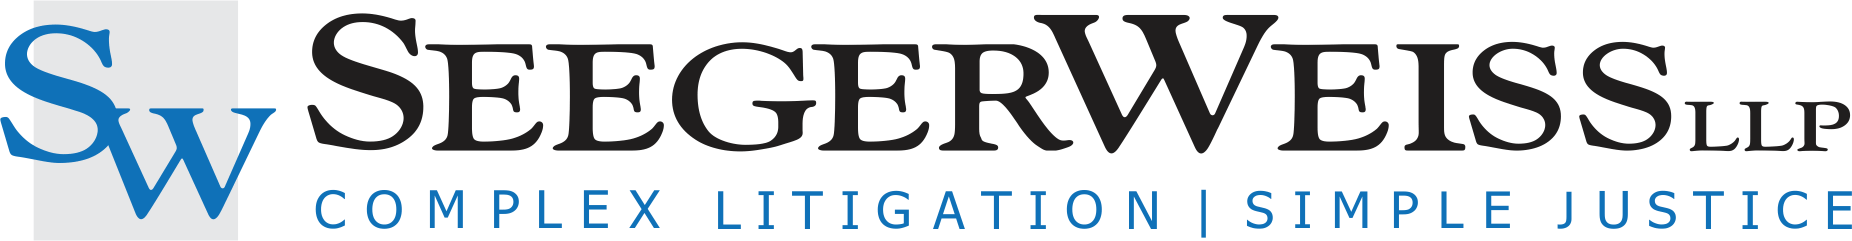 Two Seeger Weiss Practices Selected Law360 Practice Group of the Year